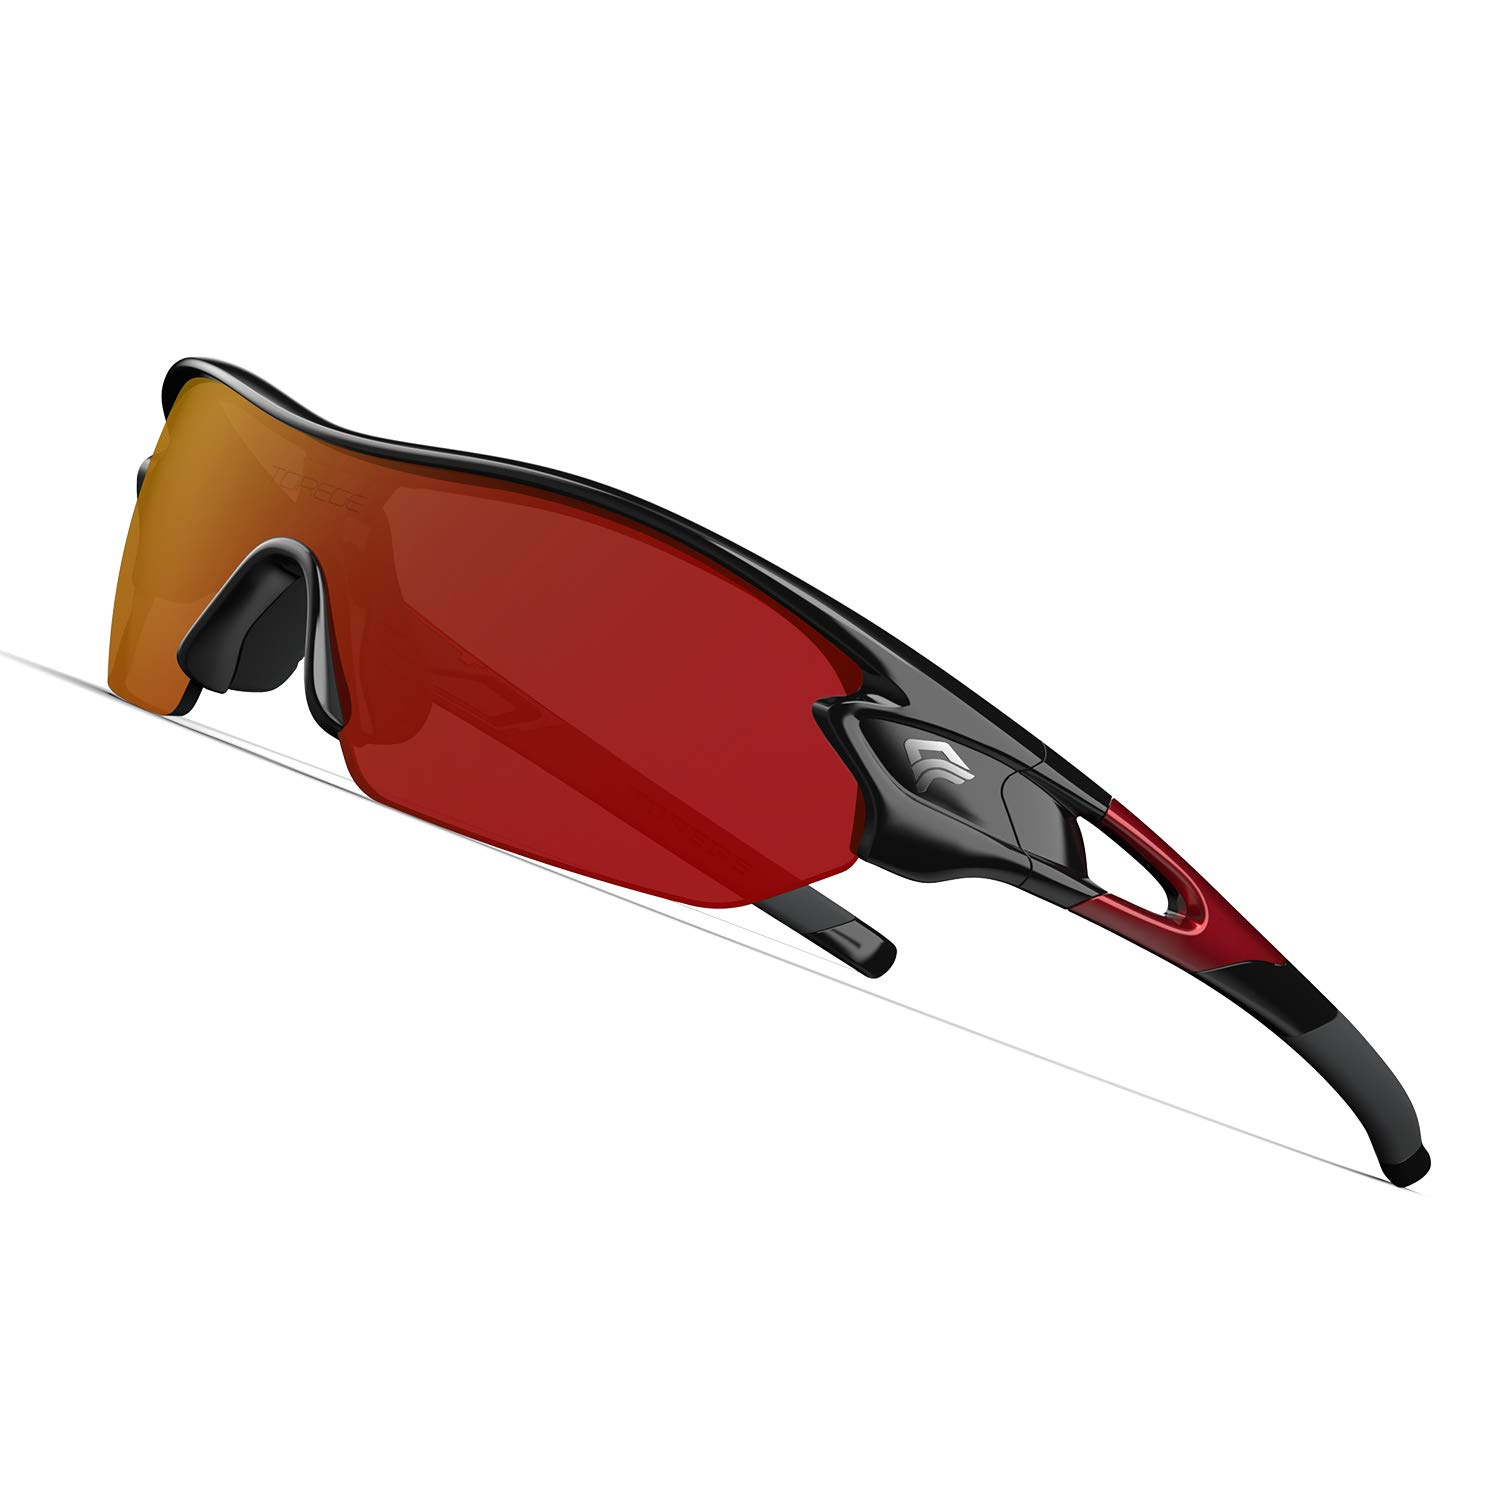 Polarized Cycling Bike Sunglasses,Sports Sunglasses for Men Women,with 3 Interchangeable Lenses Glasses